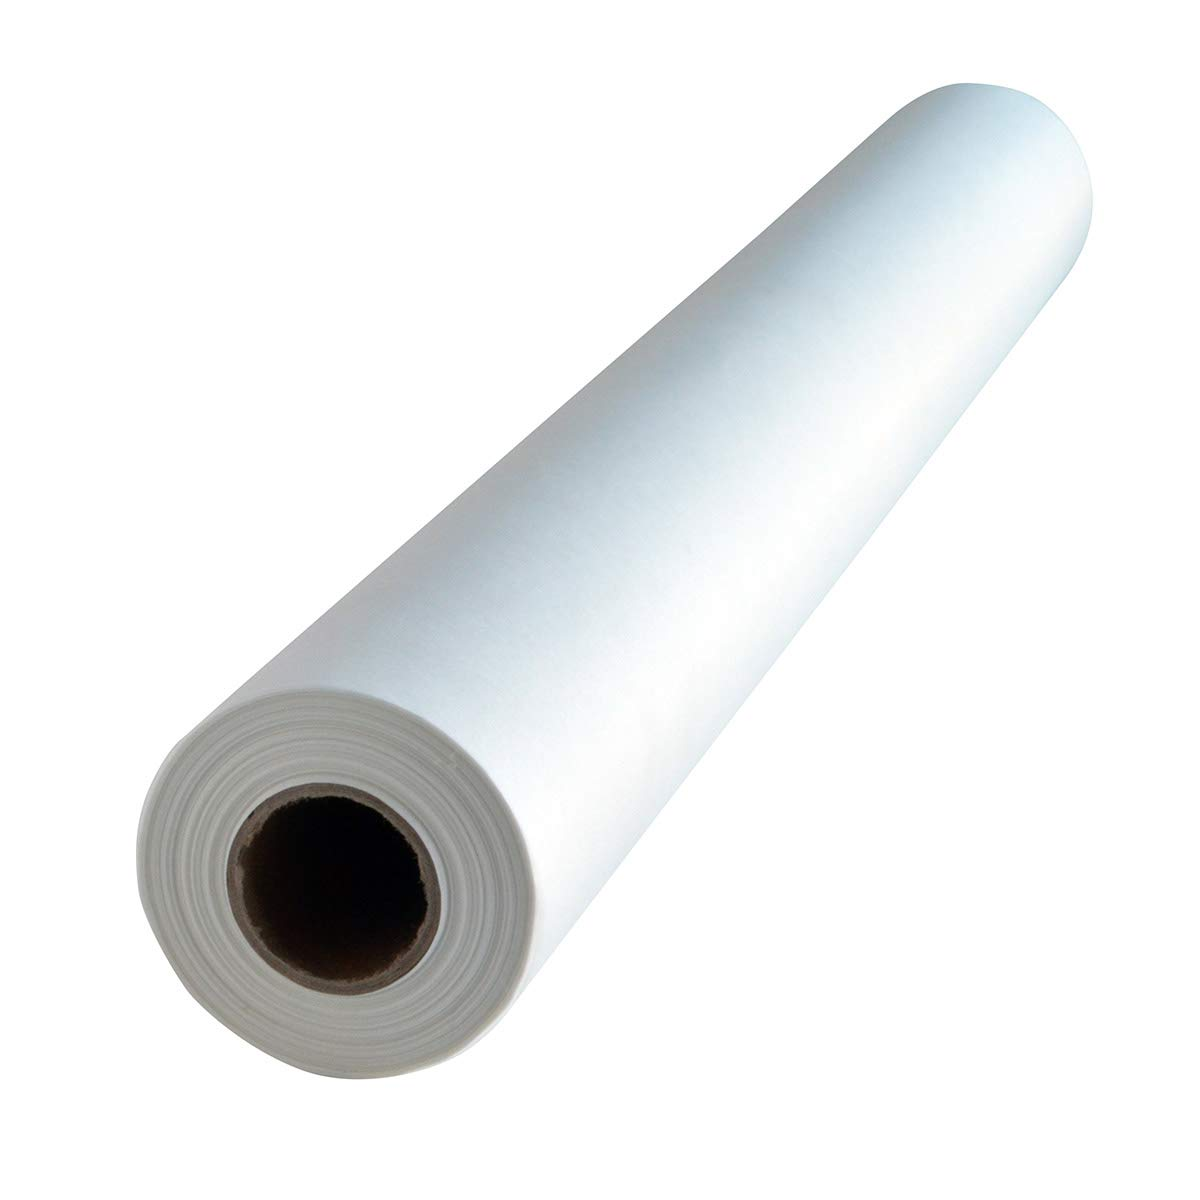 Bee Paper White Sketch and Trace Roll, 24-Inch by 50-Yards by Bee Paper Company